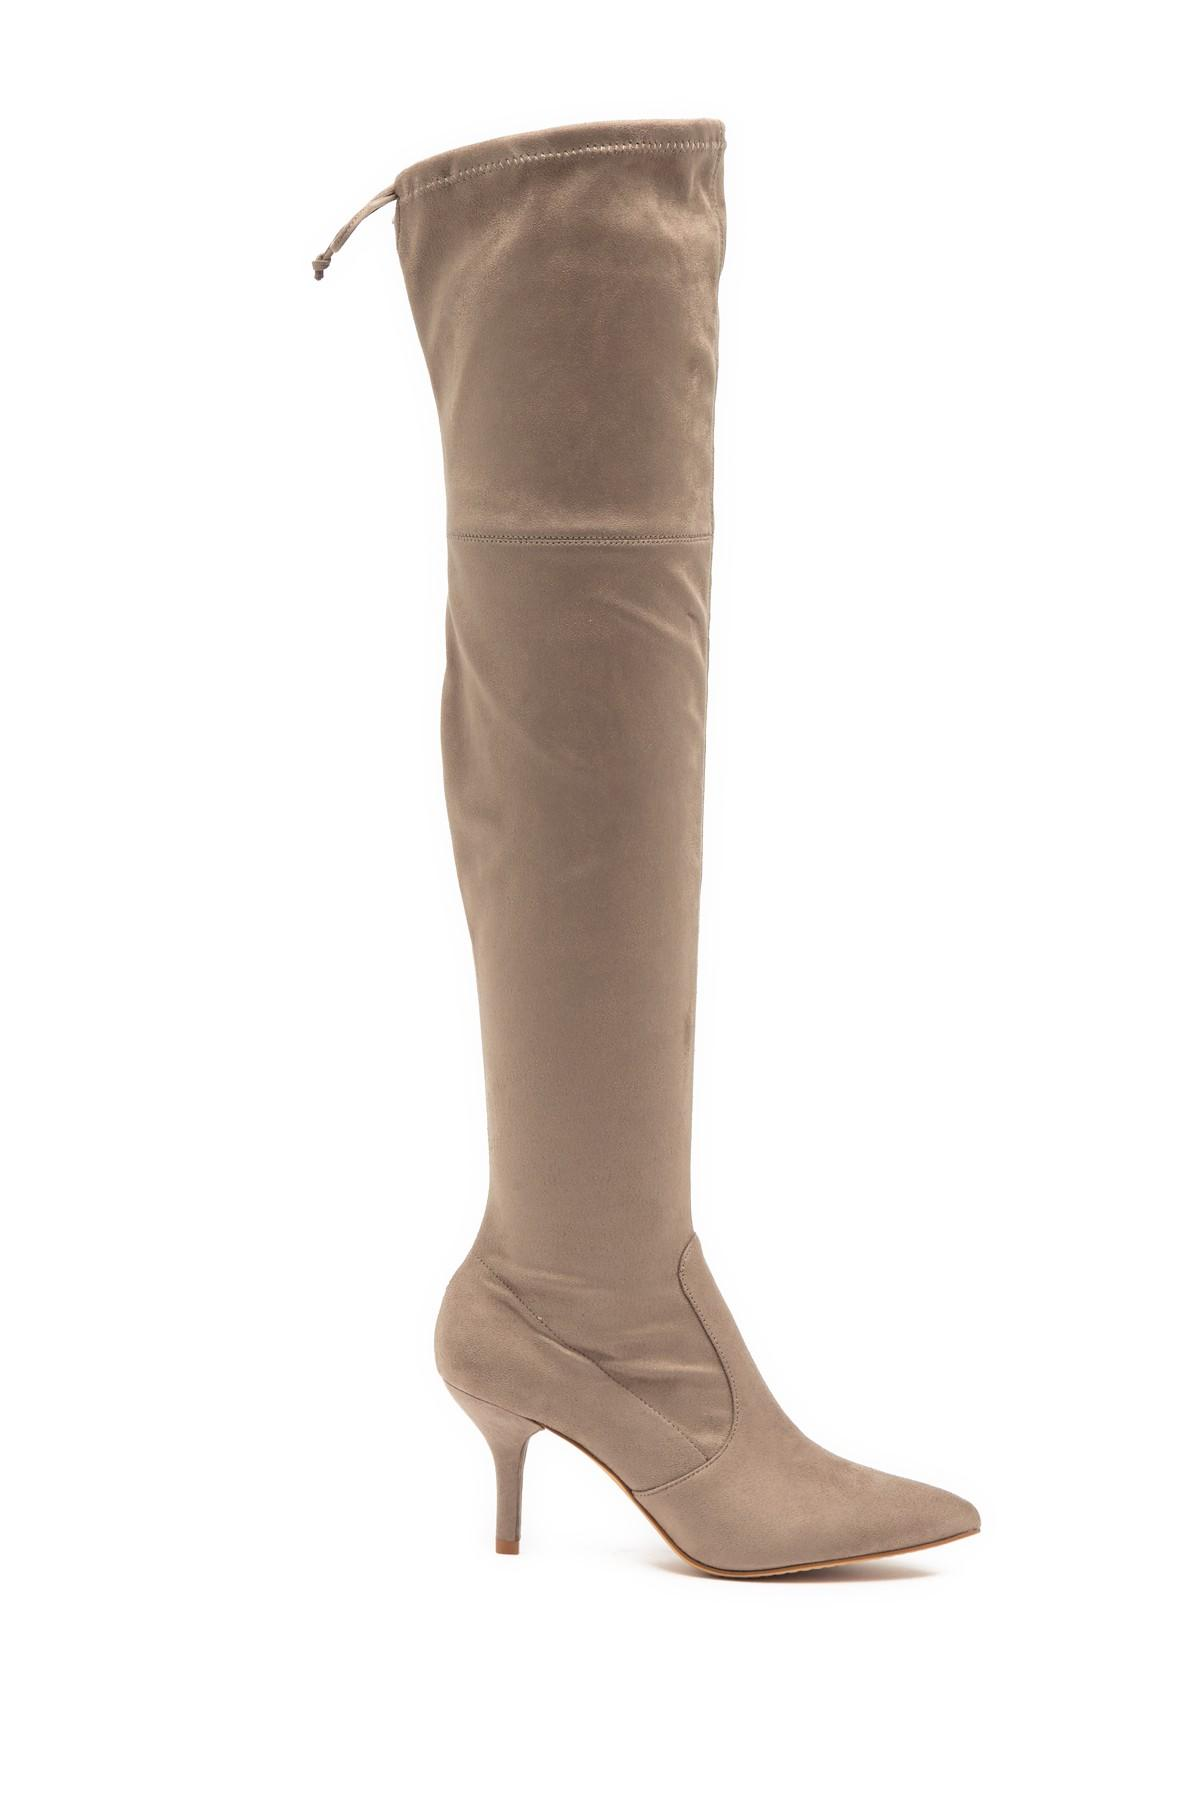 c1b3c4b8055 Vince Camuto - Multicolor Ashlina Over The Knee Boot - Lyst. View fullscreen